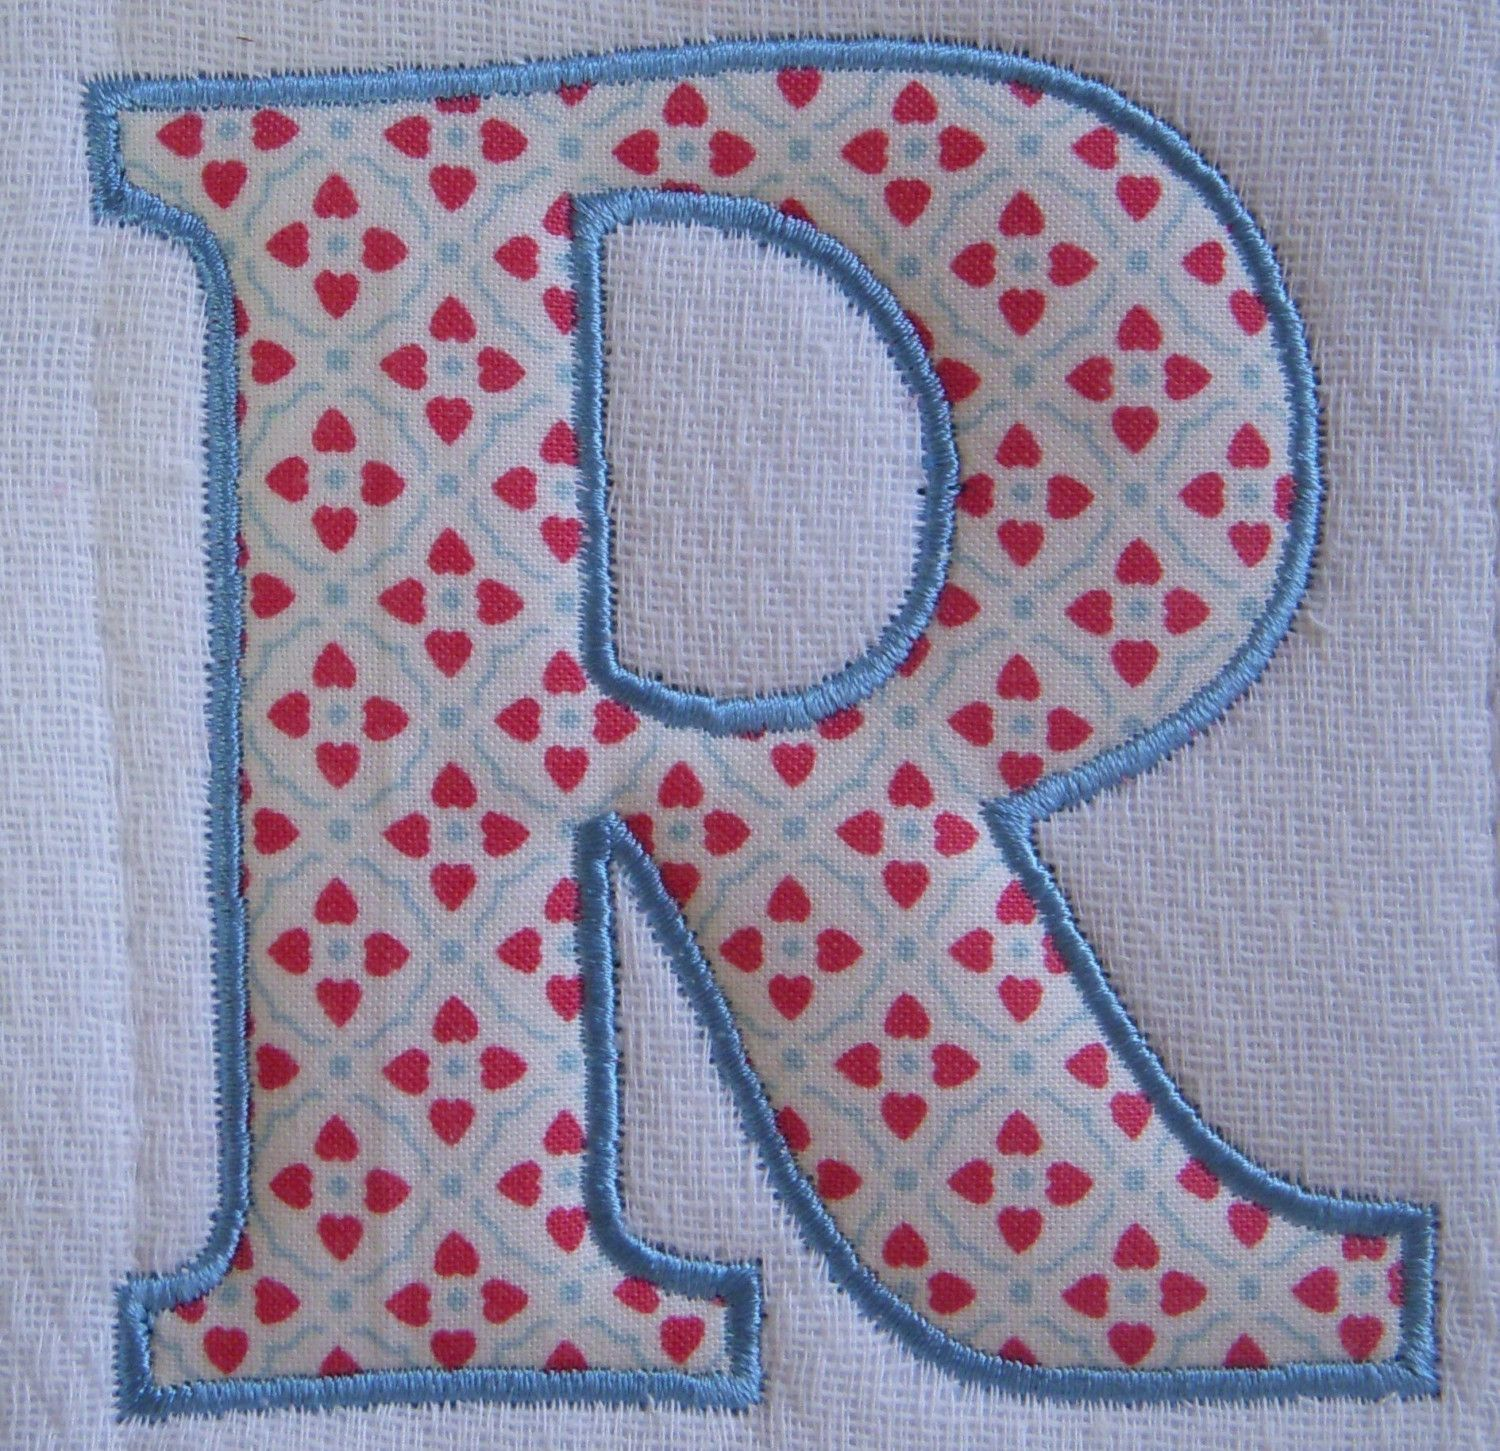 Appliqued childrens quilts alphabet patterns the quilters appliqued childrens quilts alphabet patterns the quilters cache marcia hohns free quilt spiritdancerdesigns Images